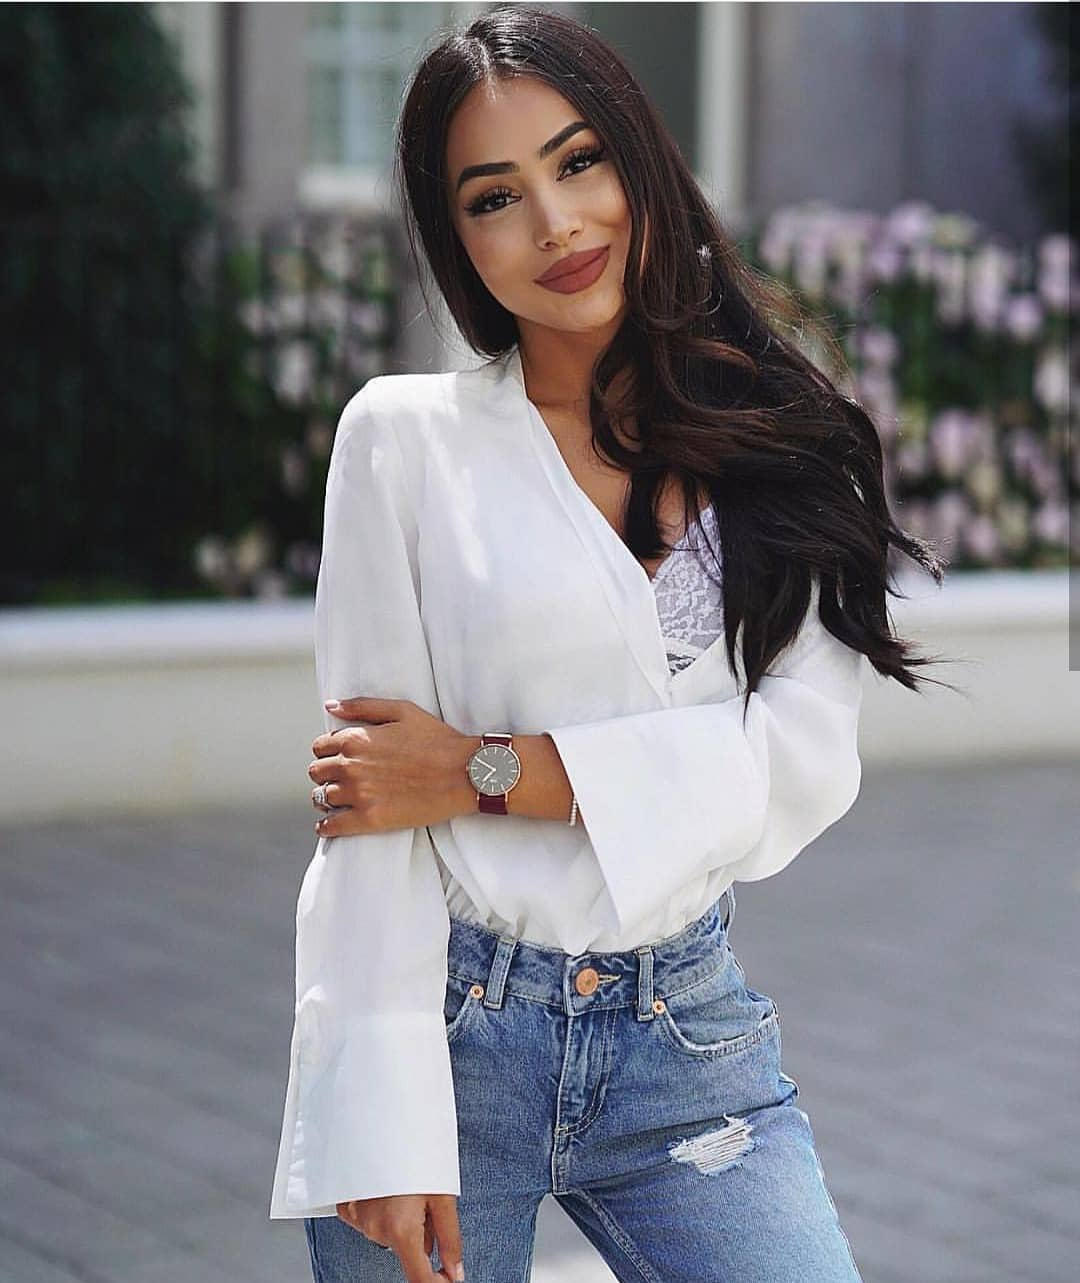 White Shirt With Bell Sleeves And Blue Jeans For Summer 2020